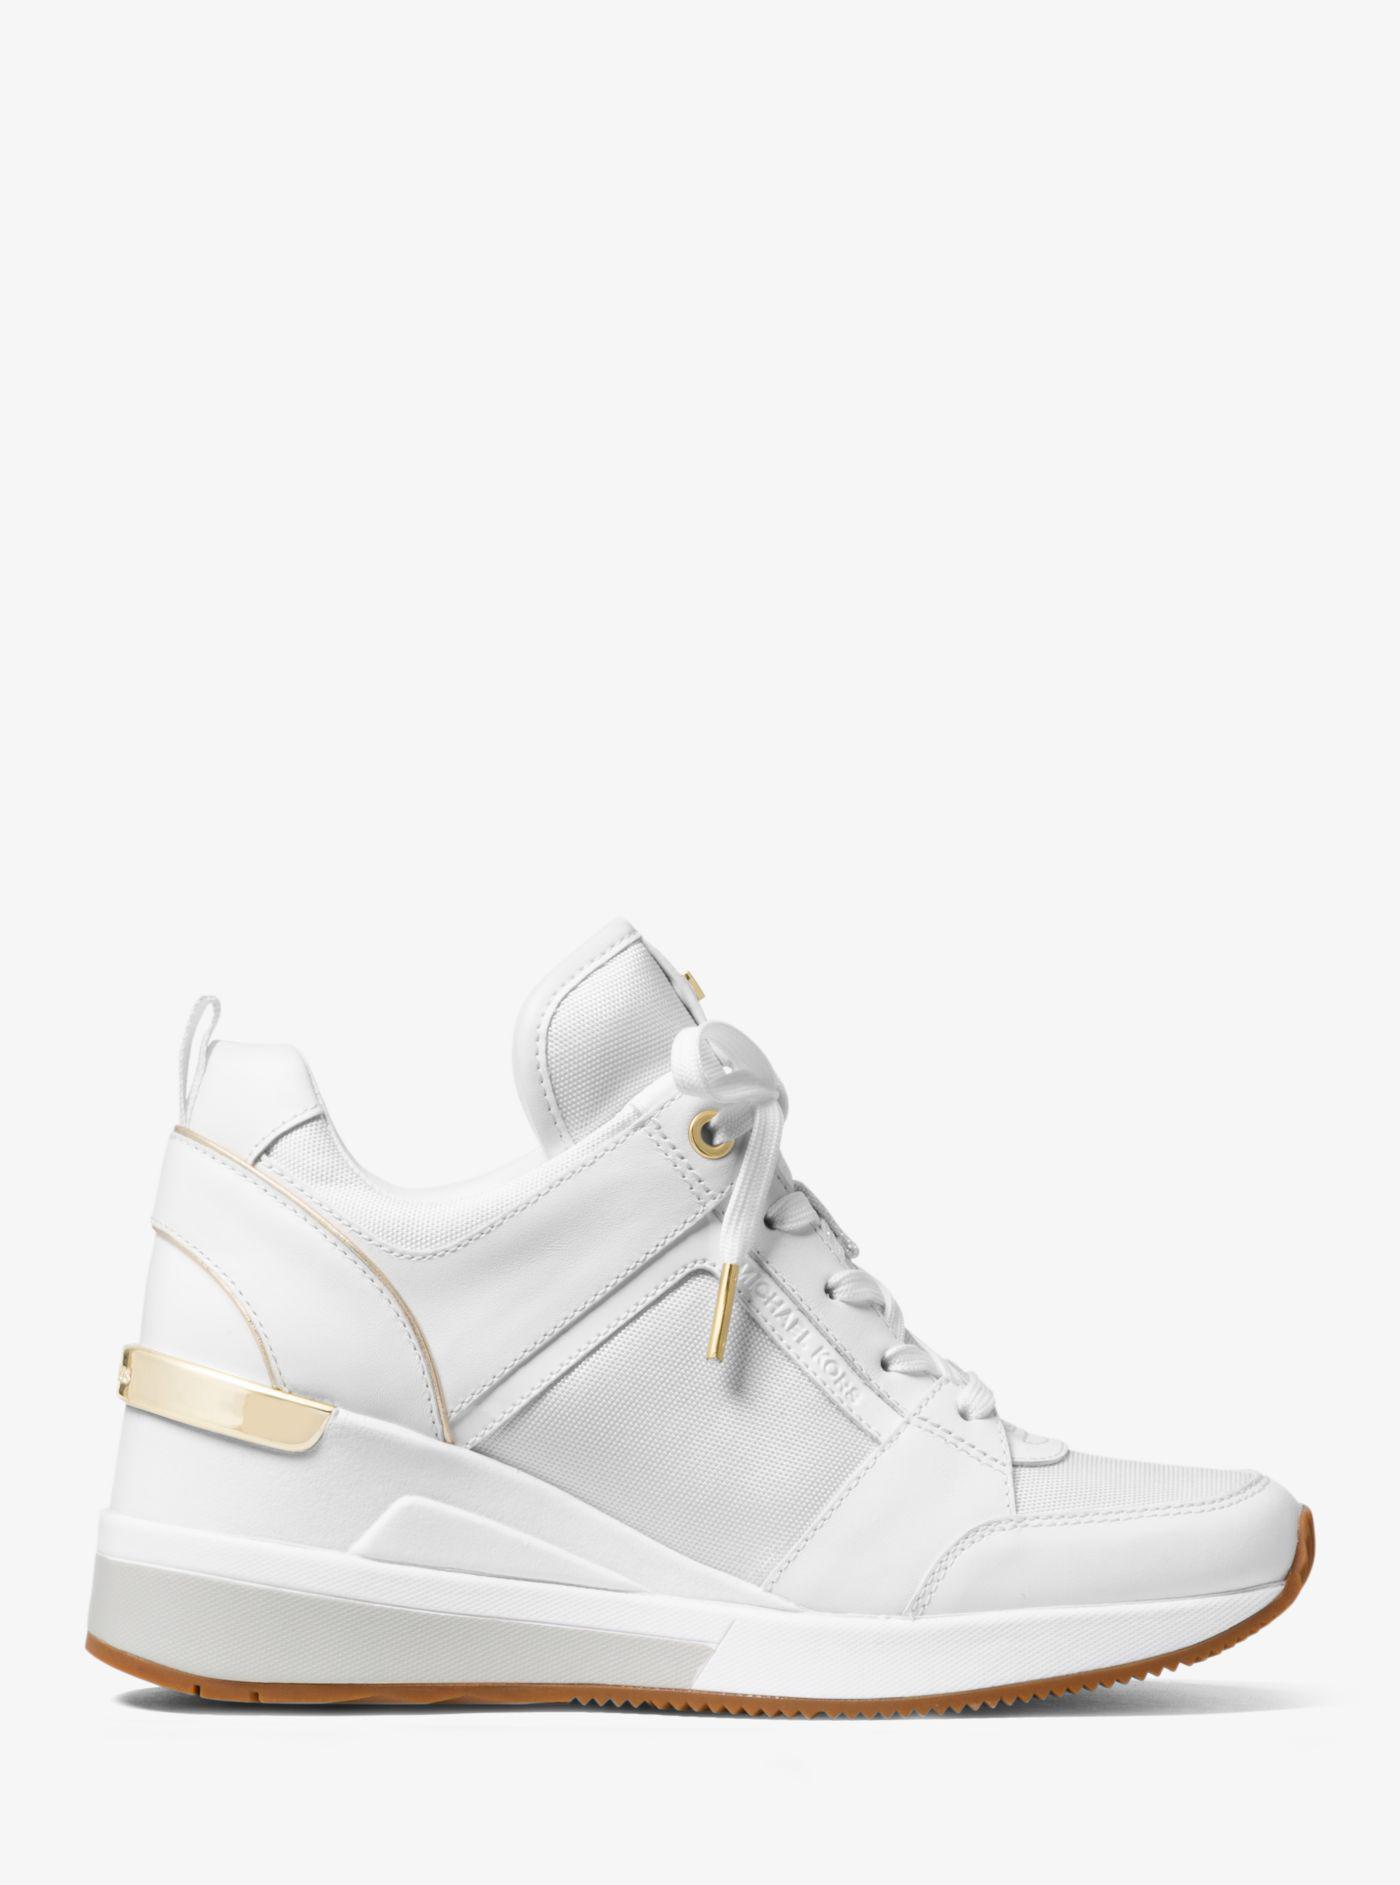 71e6c77b25b Lyst - Michael Kors Georgie Canvas And Leather Sneaker in White